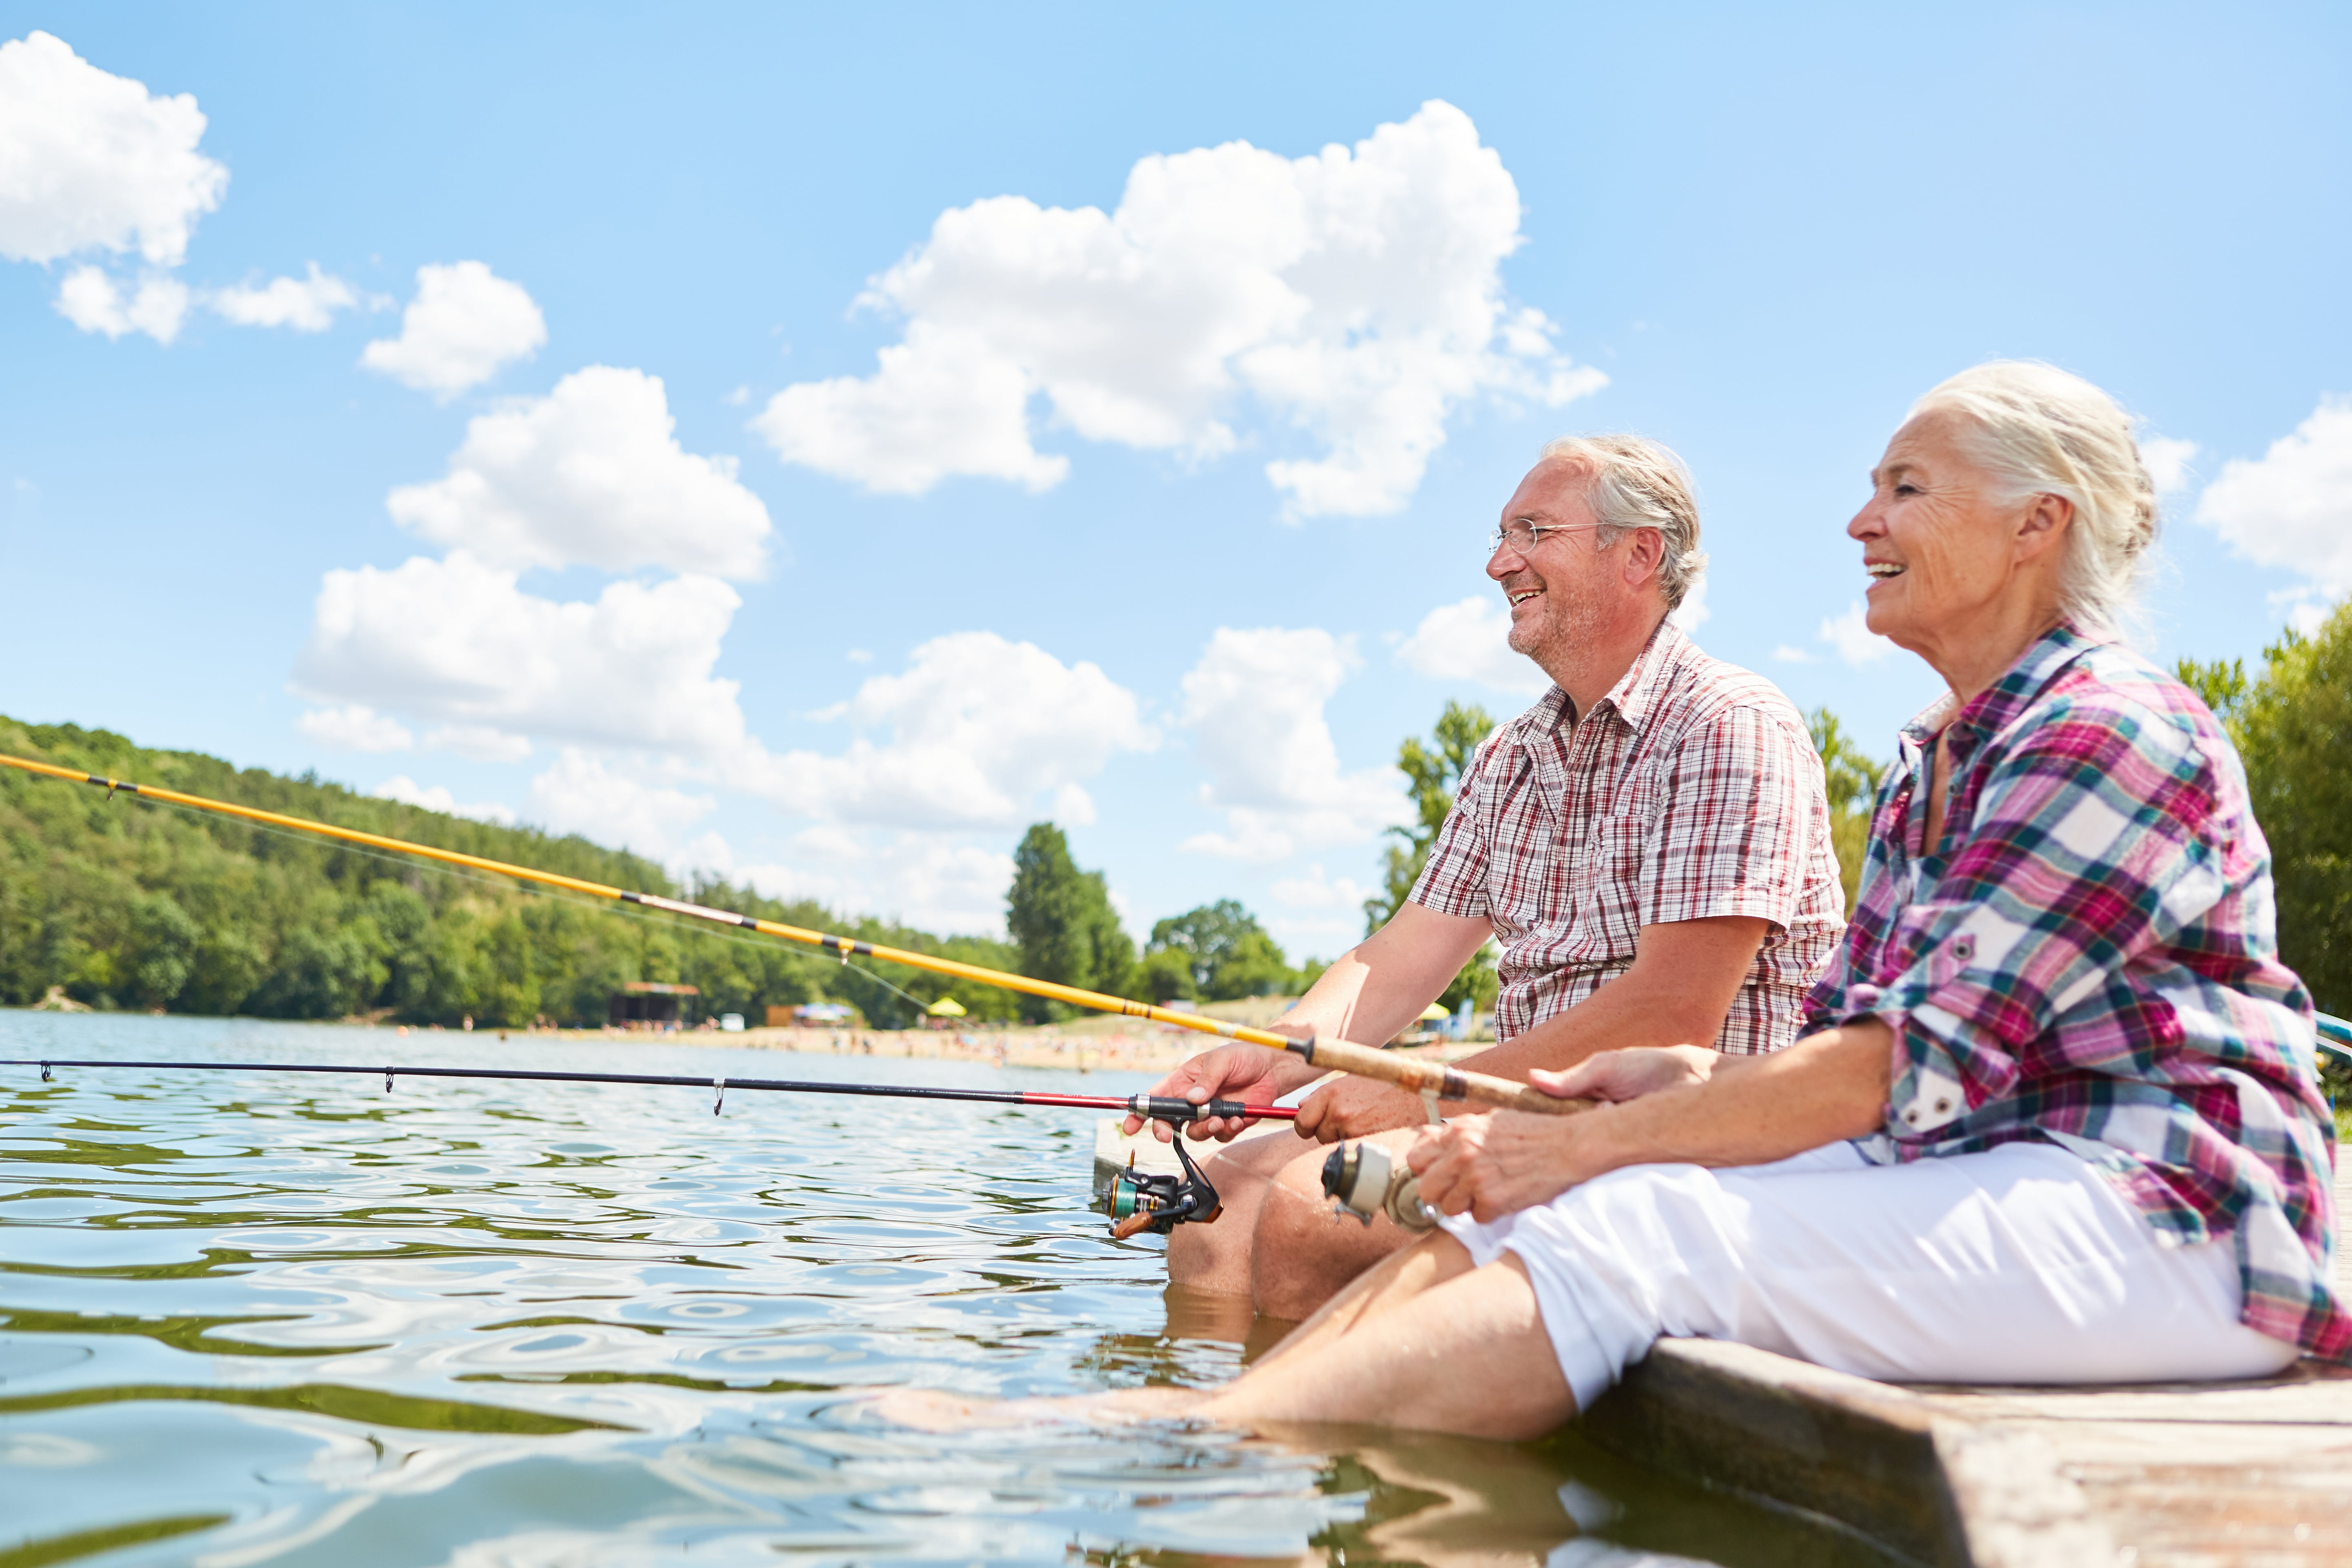 7 Ways for Seniors to Enjoy Nature This Summer